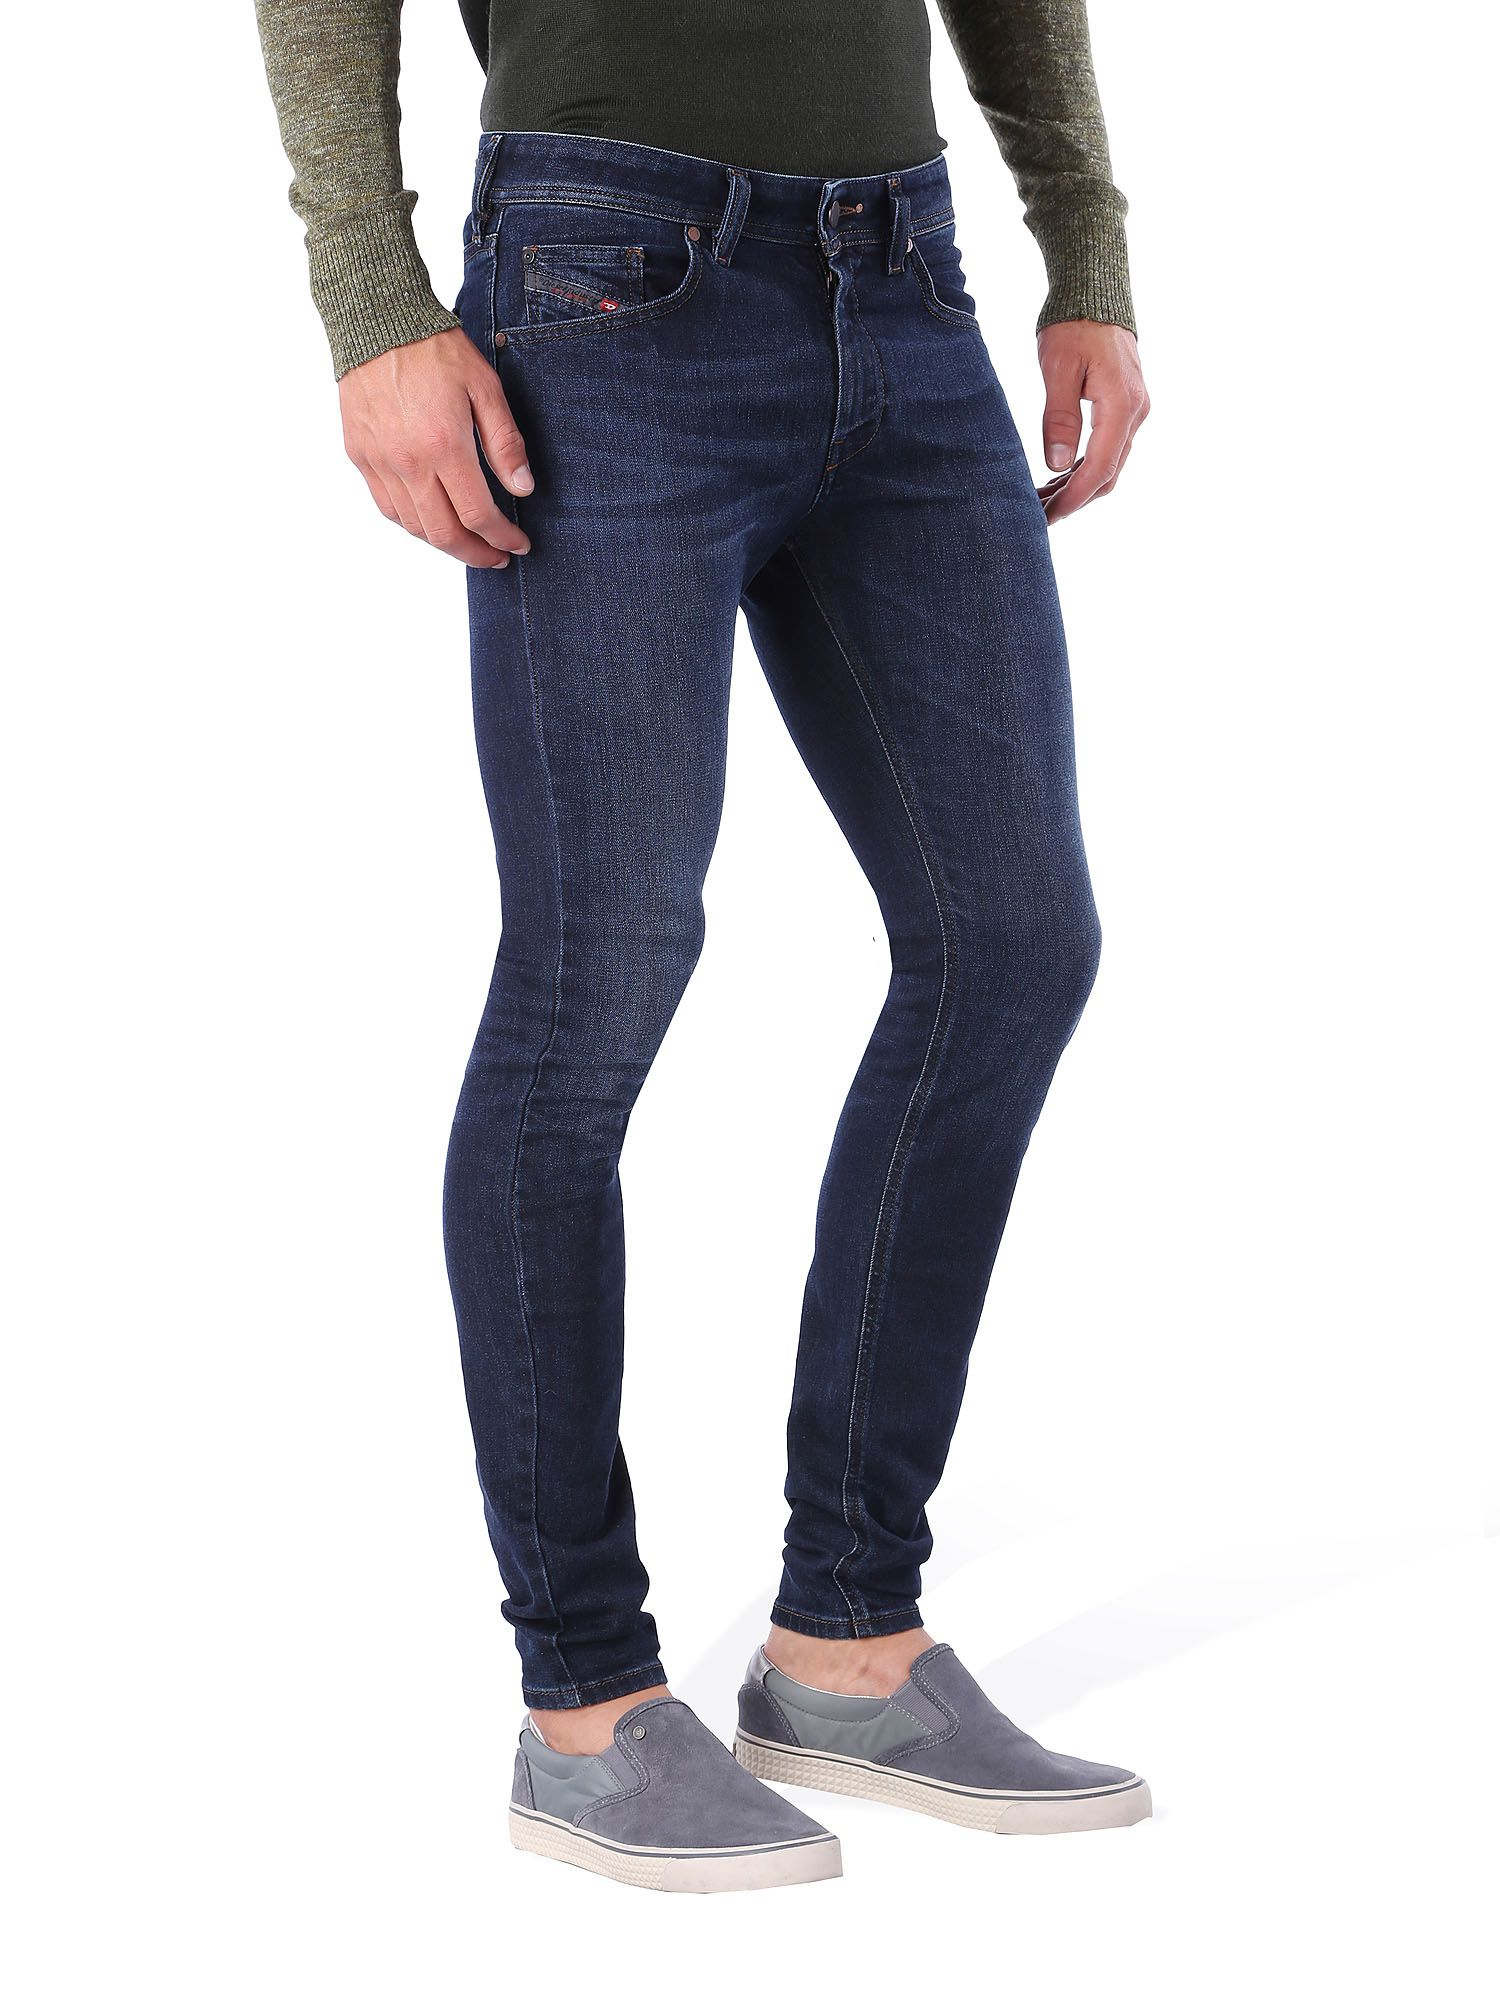 Men's Jeans with Comfortable Fit. A pair of jeans is stylish and comfortable at the same time. Any fit slim, skinny, or regular fit, suits you the best as per your requirements.